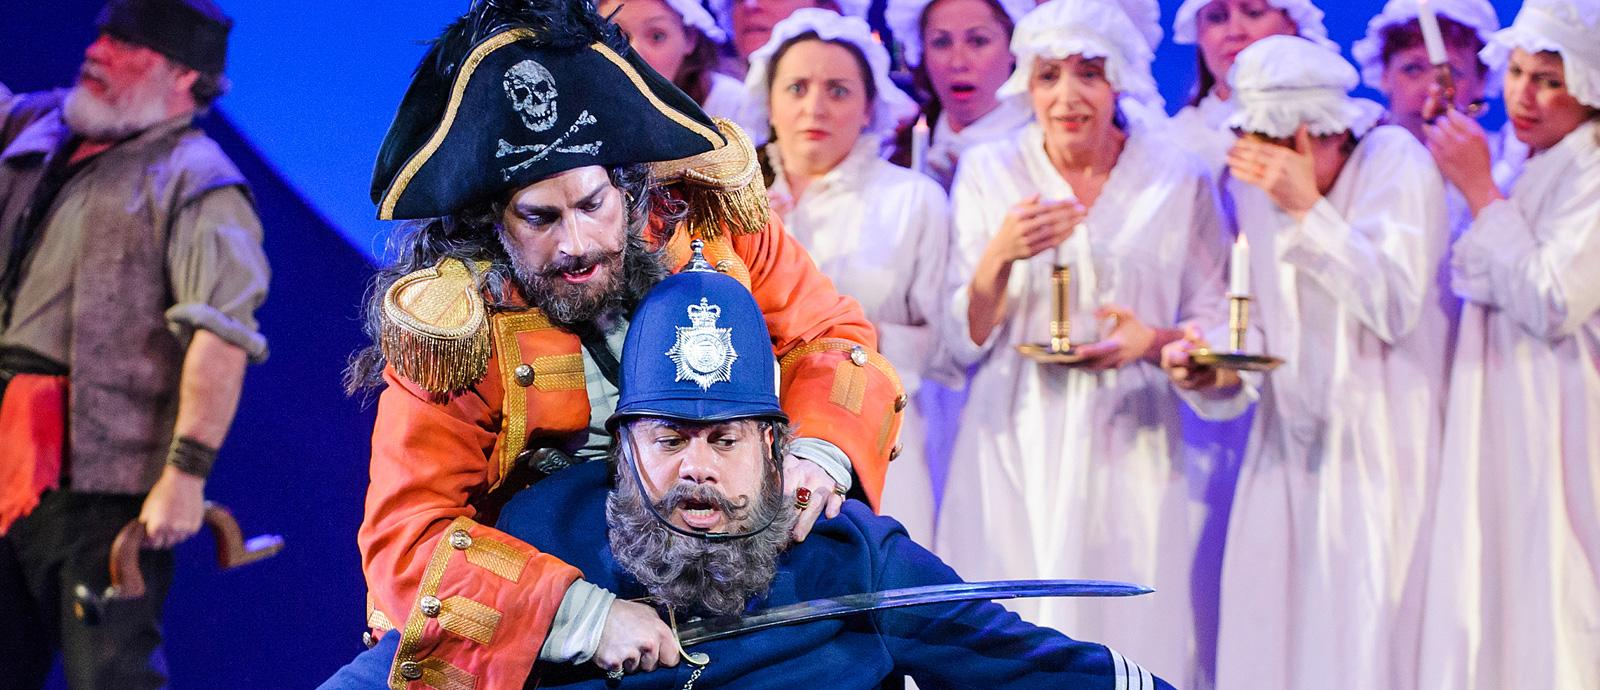 ENO's The Pirates of Penzance - Joshua Bloom as the Pirate King and Jonathan Lemalu as Sergeant of Police. Photo by Tristram Kenton